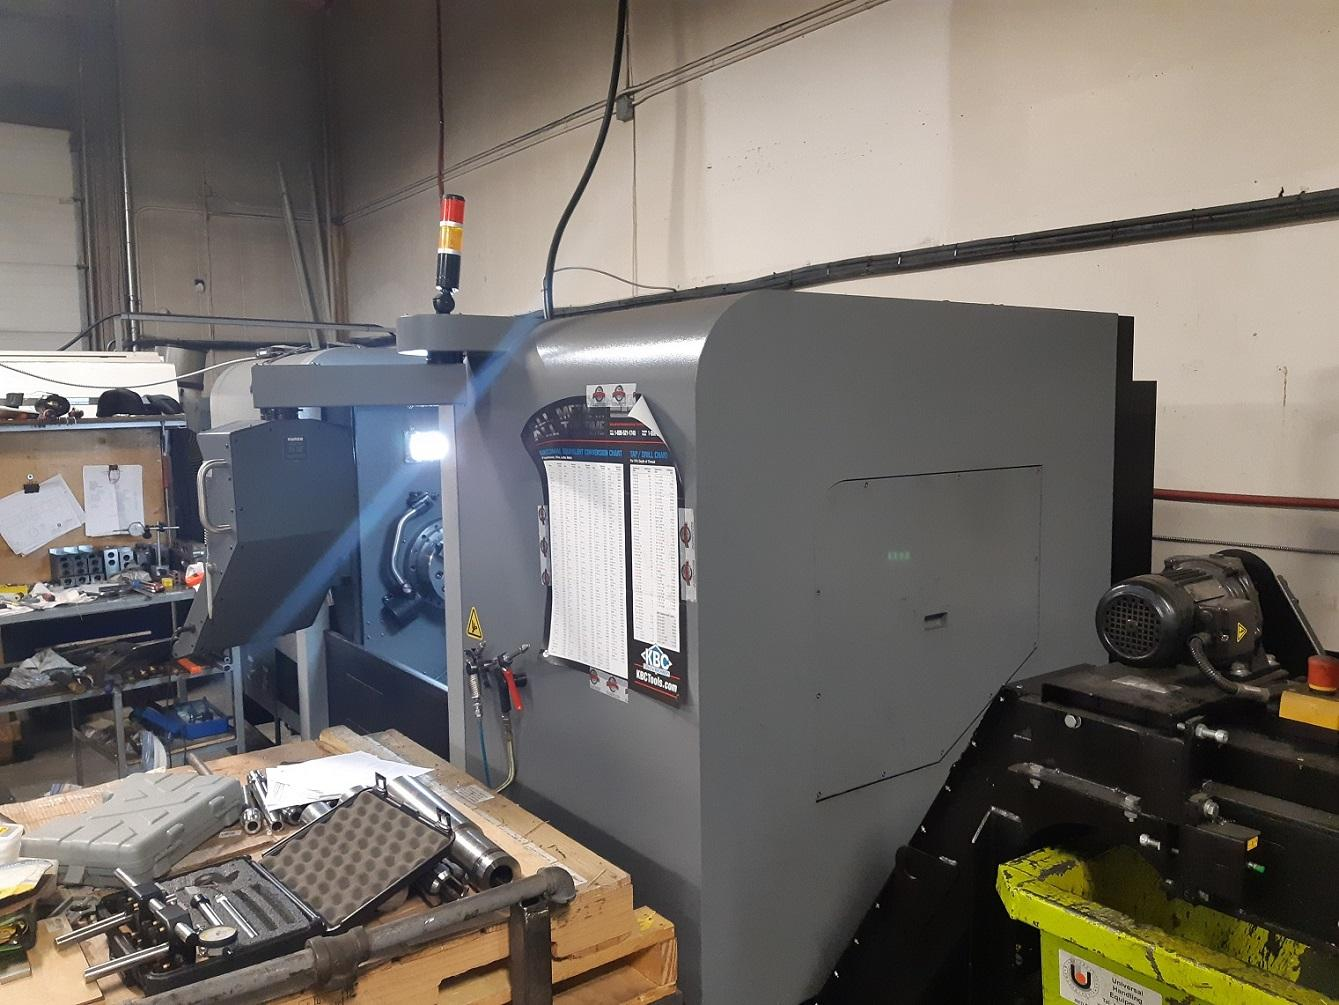 """Hurco TM-12i CNC Lathe, WinMax Classic, 12"""" Chuck, 39.4"""" Centers, 4.09"""" Bar Capacity, 12 Position Turret, Prog. Tailstock, Tool Setter, Rigid Tap, Miscellaneous Holders, Low Hours, 2017"""